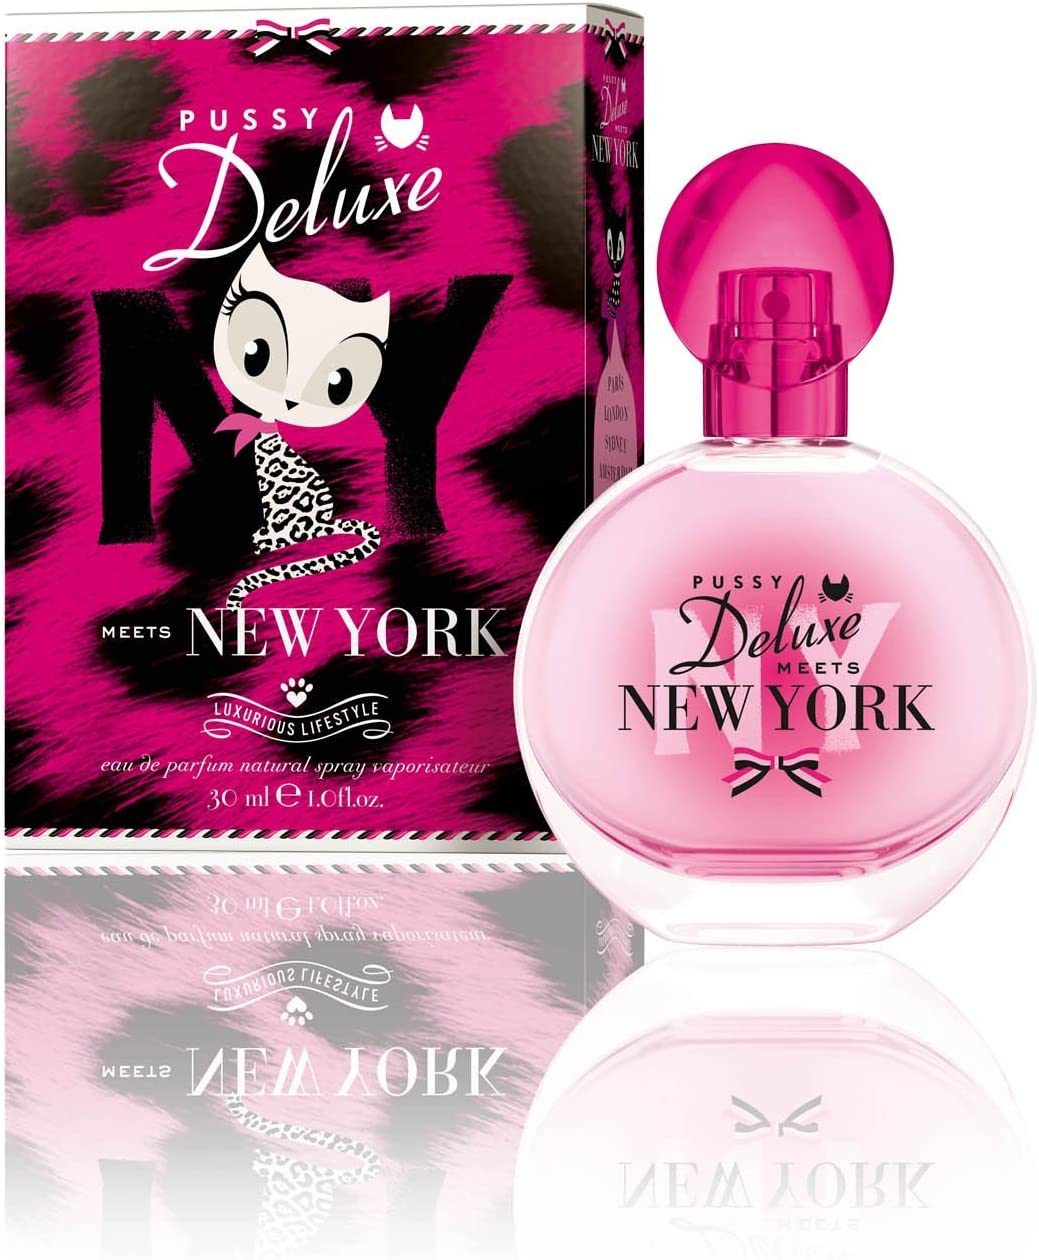 Pussy Deluxe meets New York Eau de Parfum NS 30 ml by Pussy Deluxe ...